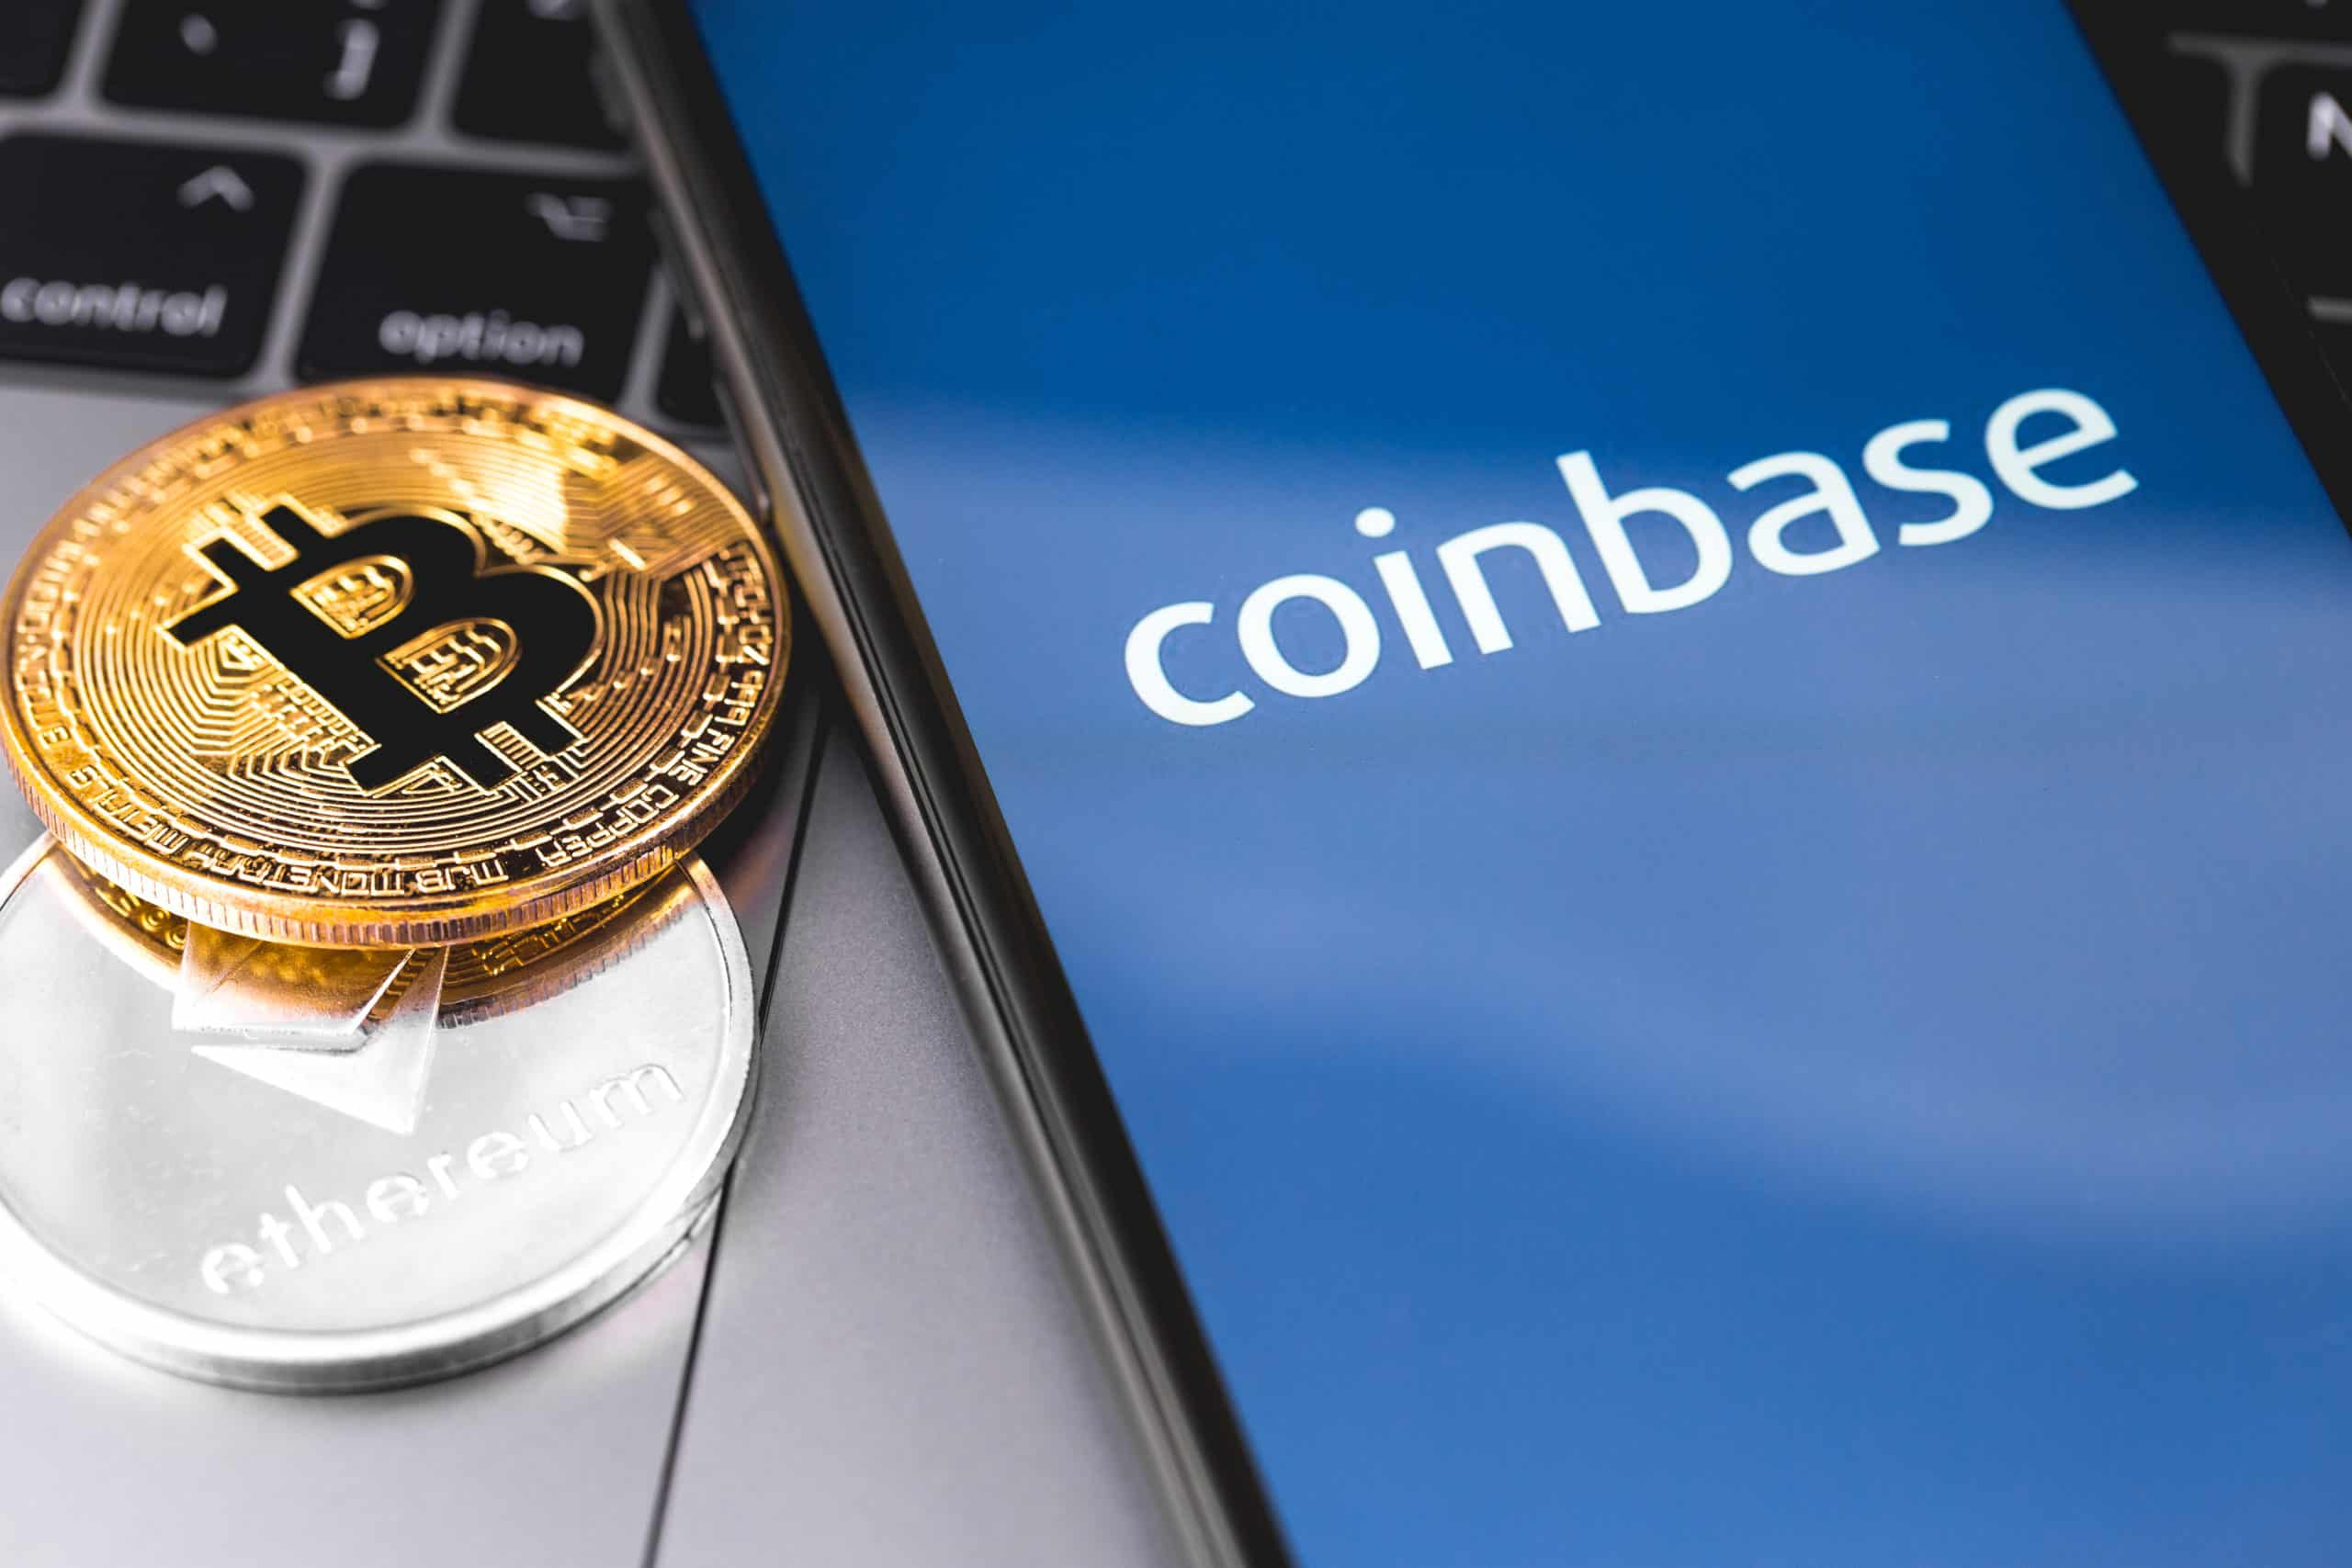 Coinbase Listing Price Set at 0, Pre-Listing Futures Soar